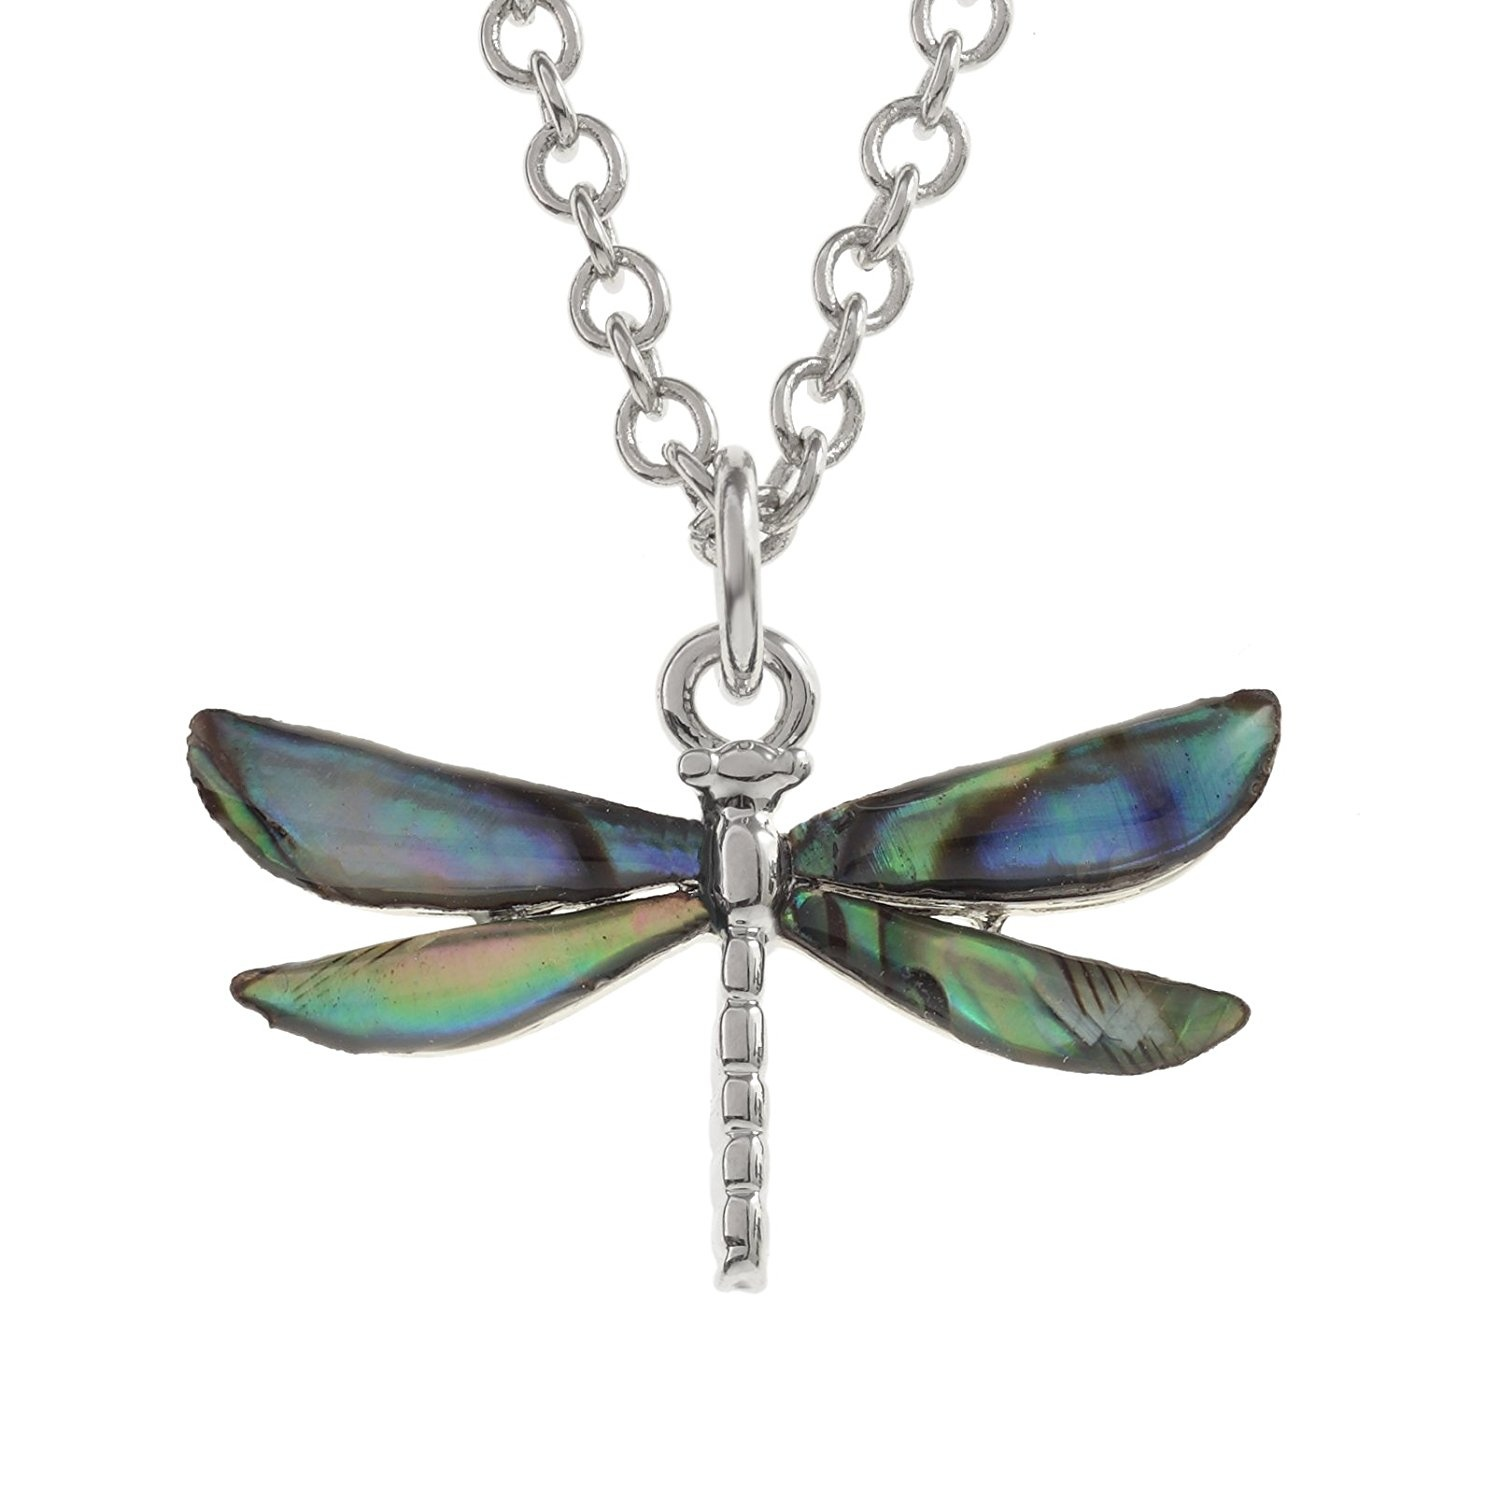 dragonfly image hover necklace zoom to over